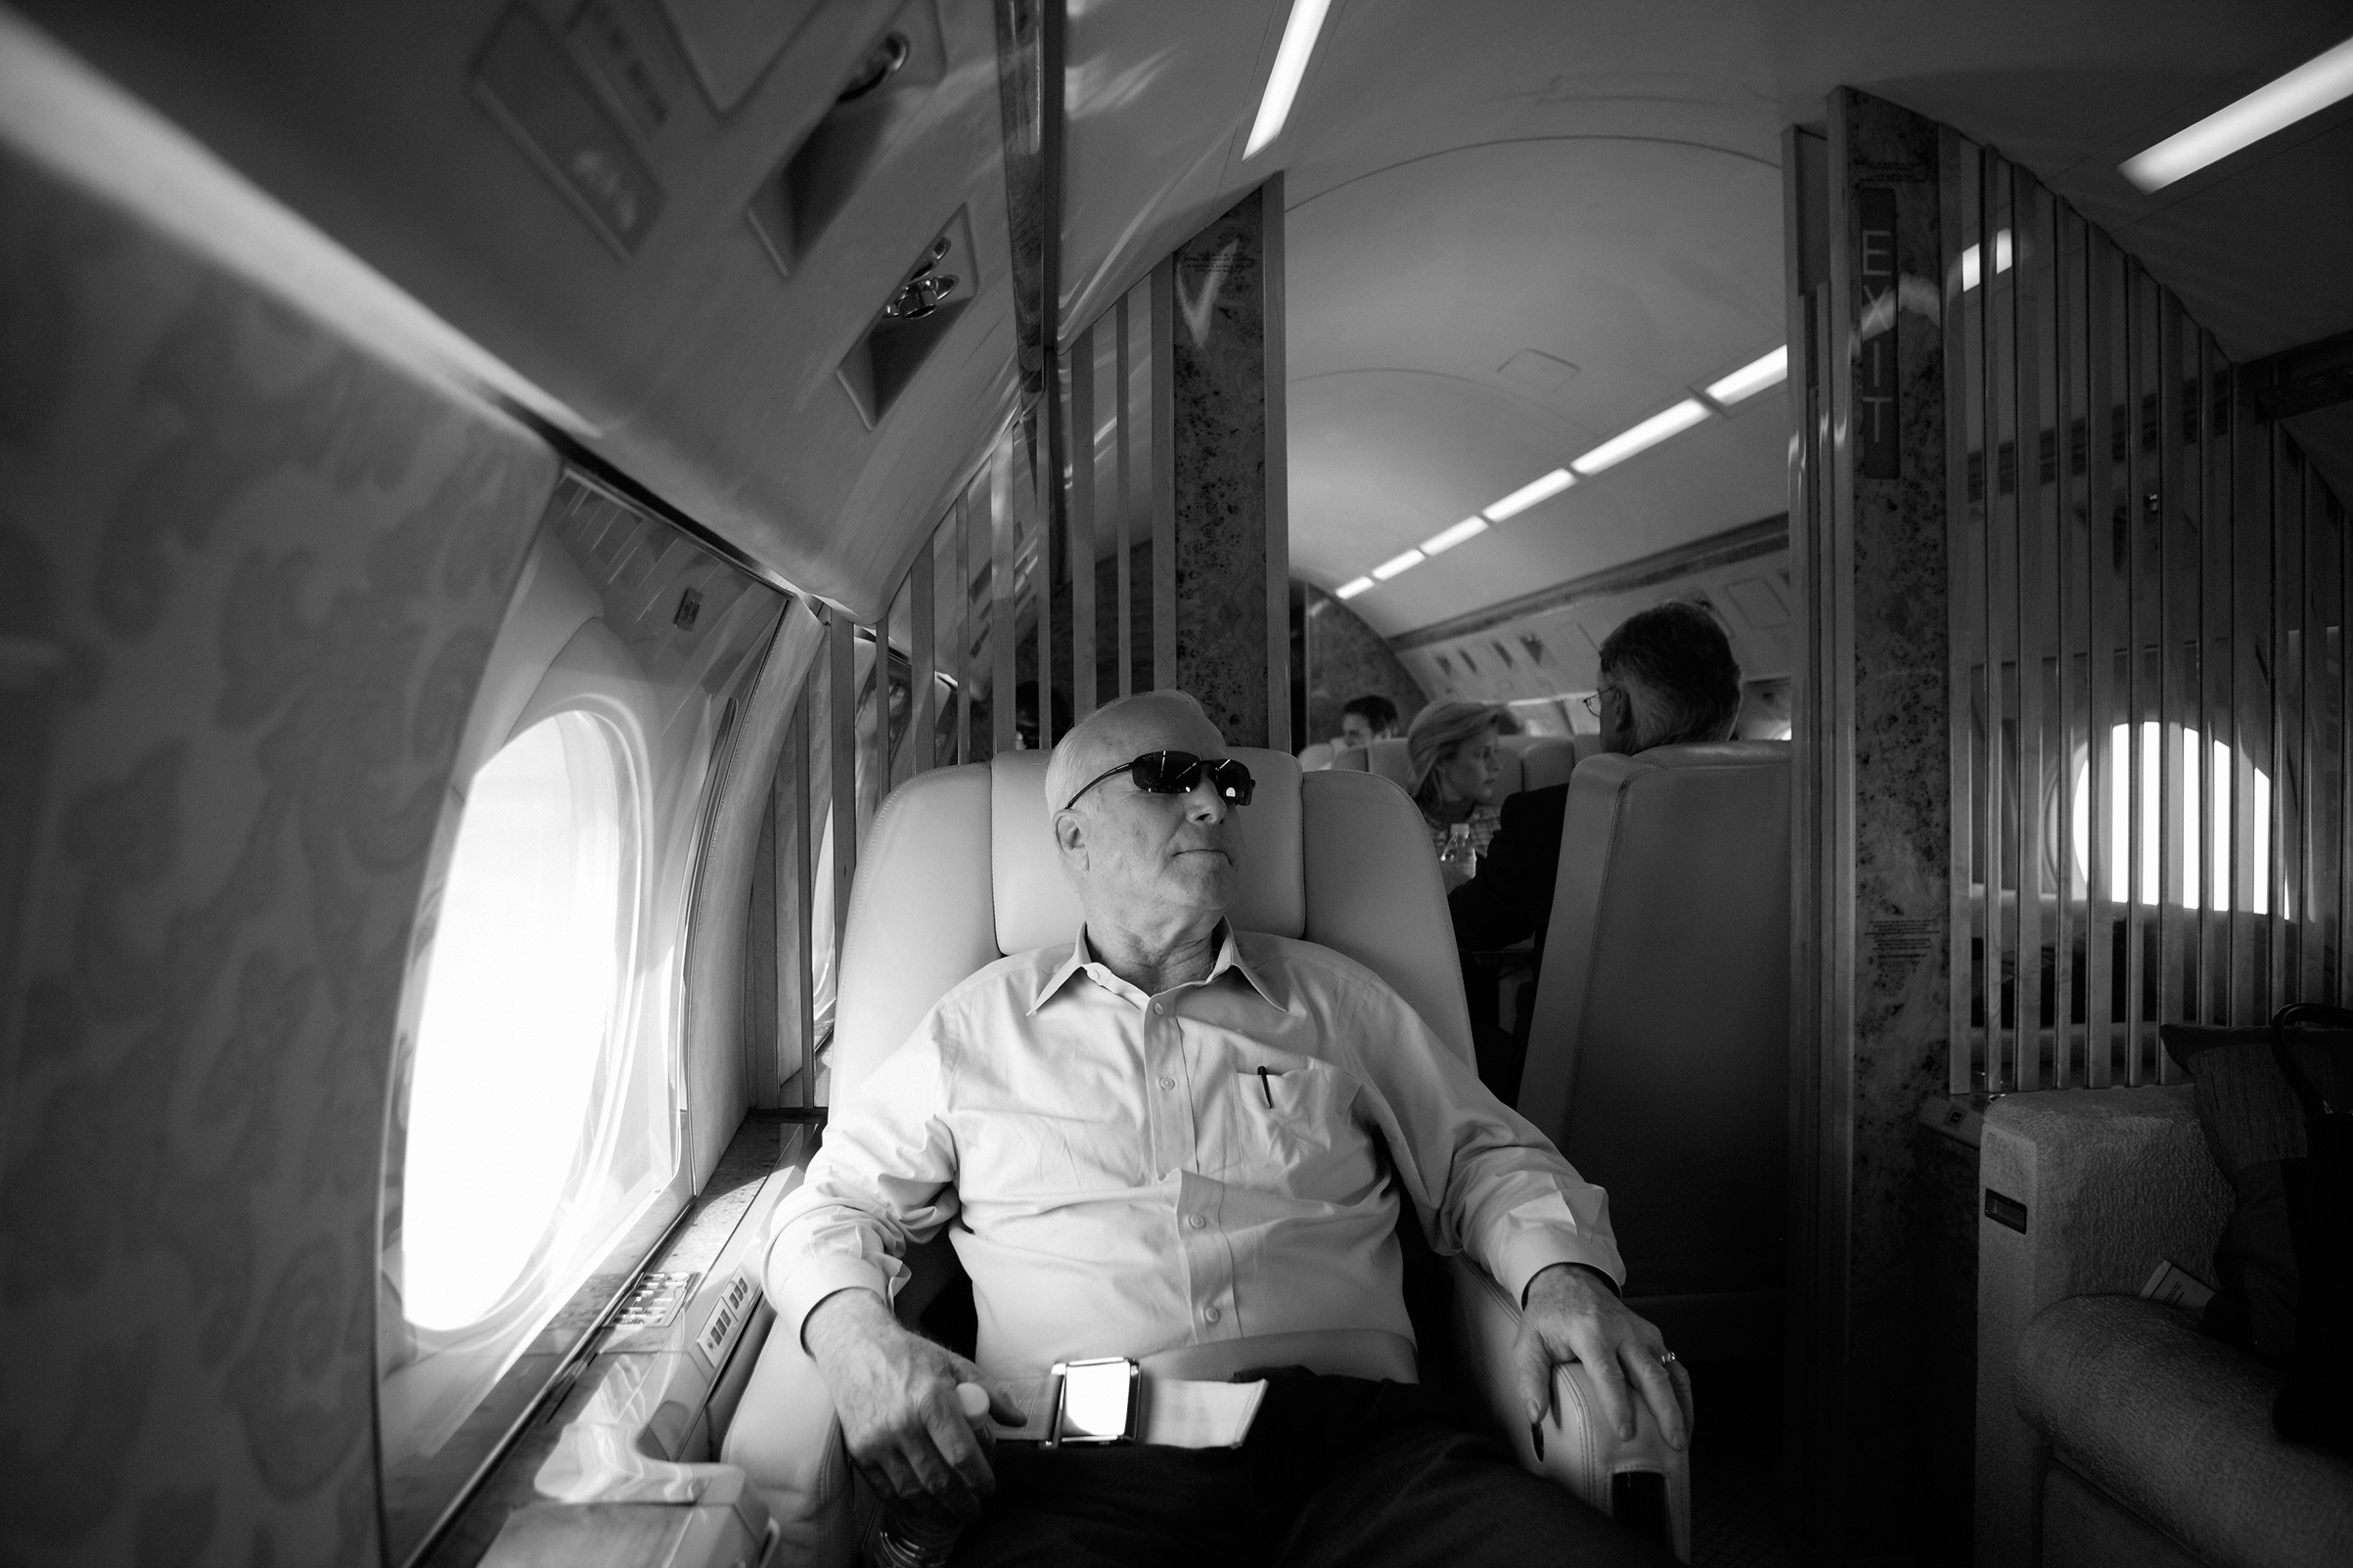 Sen. John McCain on board his private plane during presidential campaign stops in South Carolina on April 26, 2007.